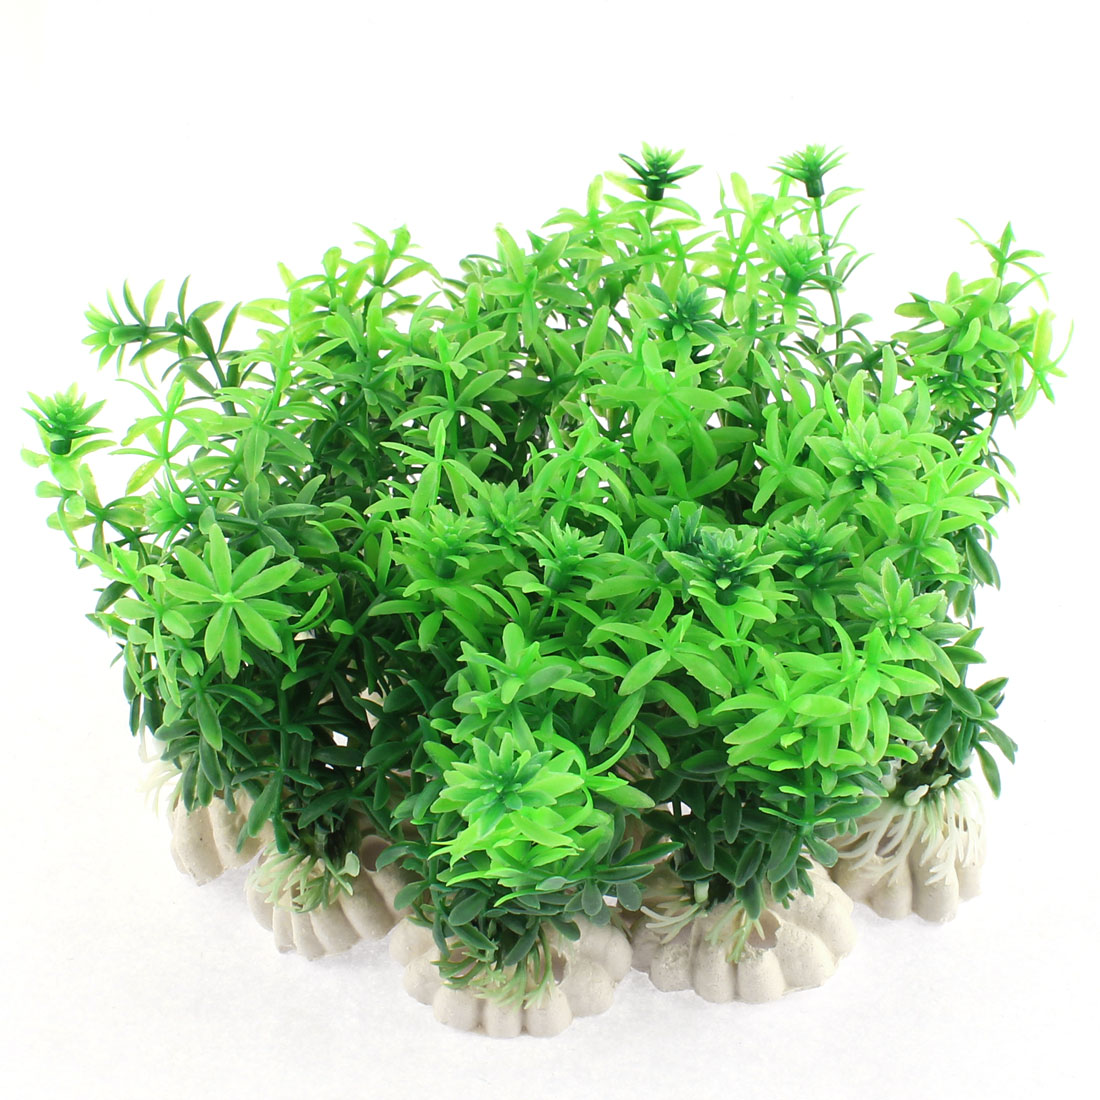 Aquarium Tank Artificial Water Landscape Plant Green 11cm Height 12pcs